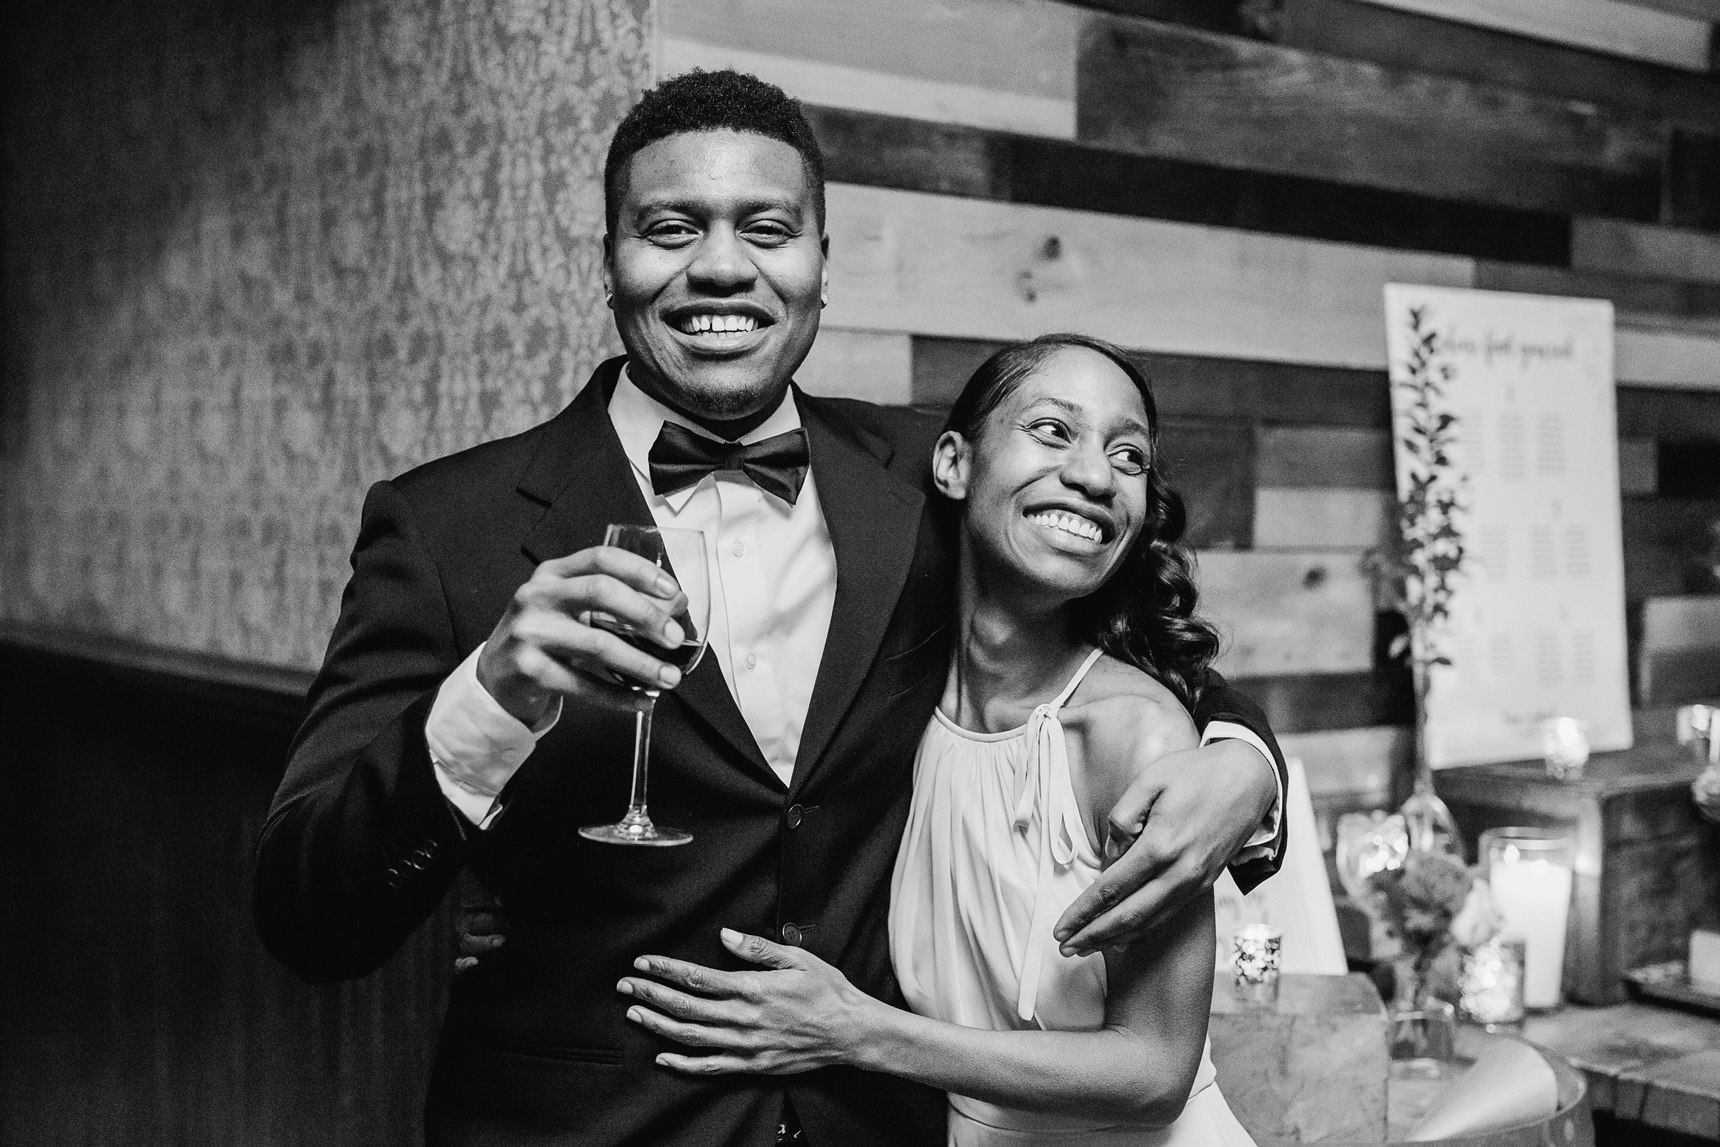 KP_BrooklynWinery_Wedding_NewYork_Photographer093.jpg